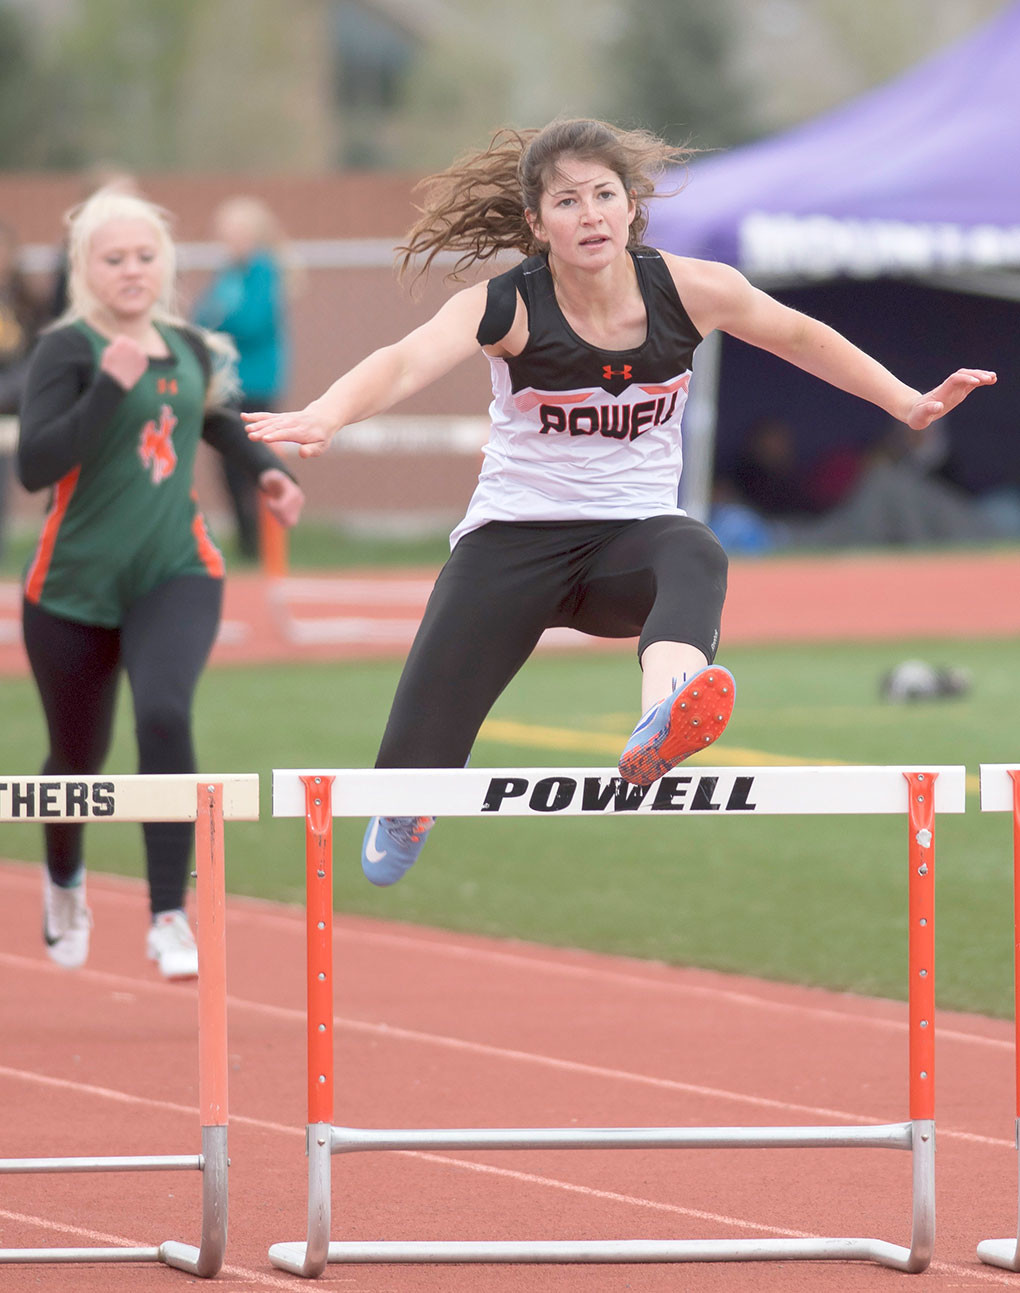 Lady Panther Maddy Hanks competes in the 300 meter hurdles at the 3A West Regionals in Powell early this spring. Hanks was given the L.A. Kohnke Most Deserving Award for her efforts this season.